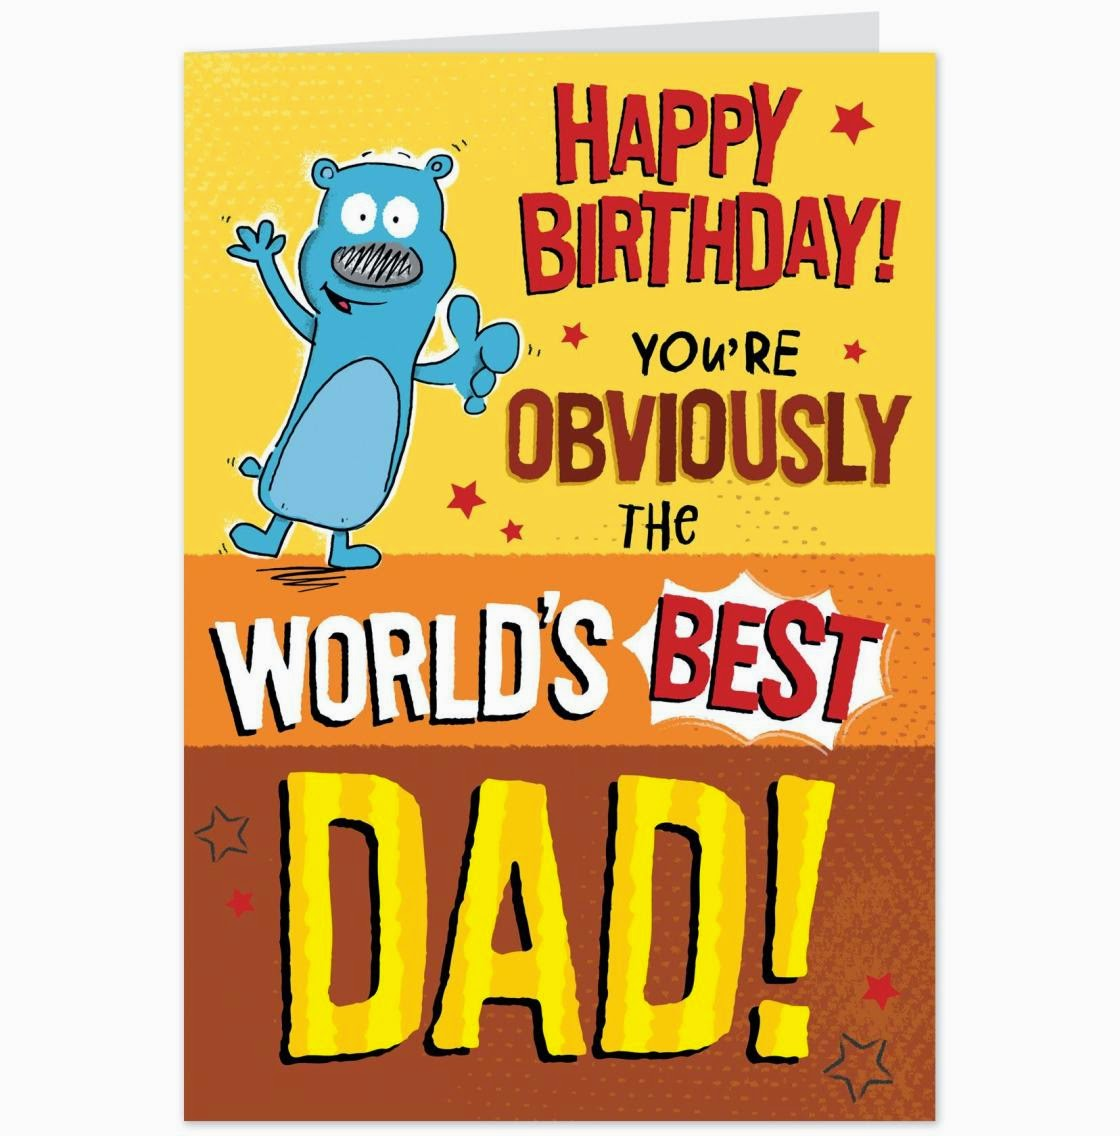 Birthday Quotes, Images And Messages: Birthday Images For Dad